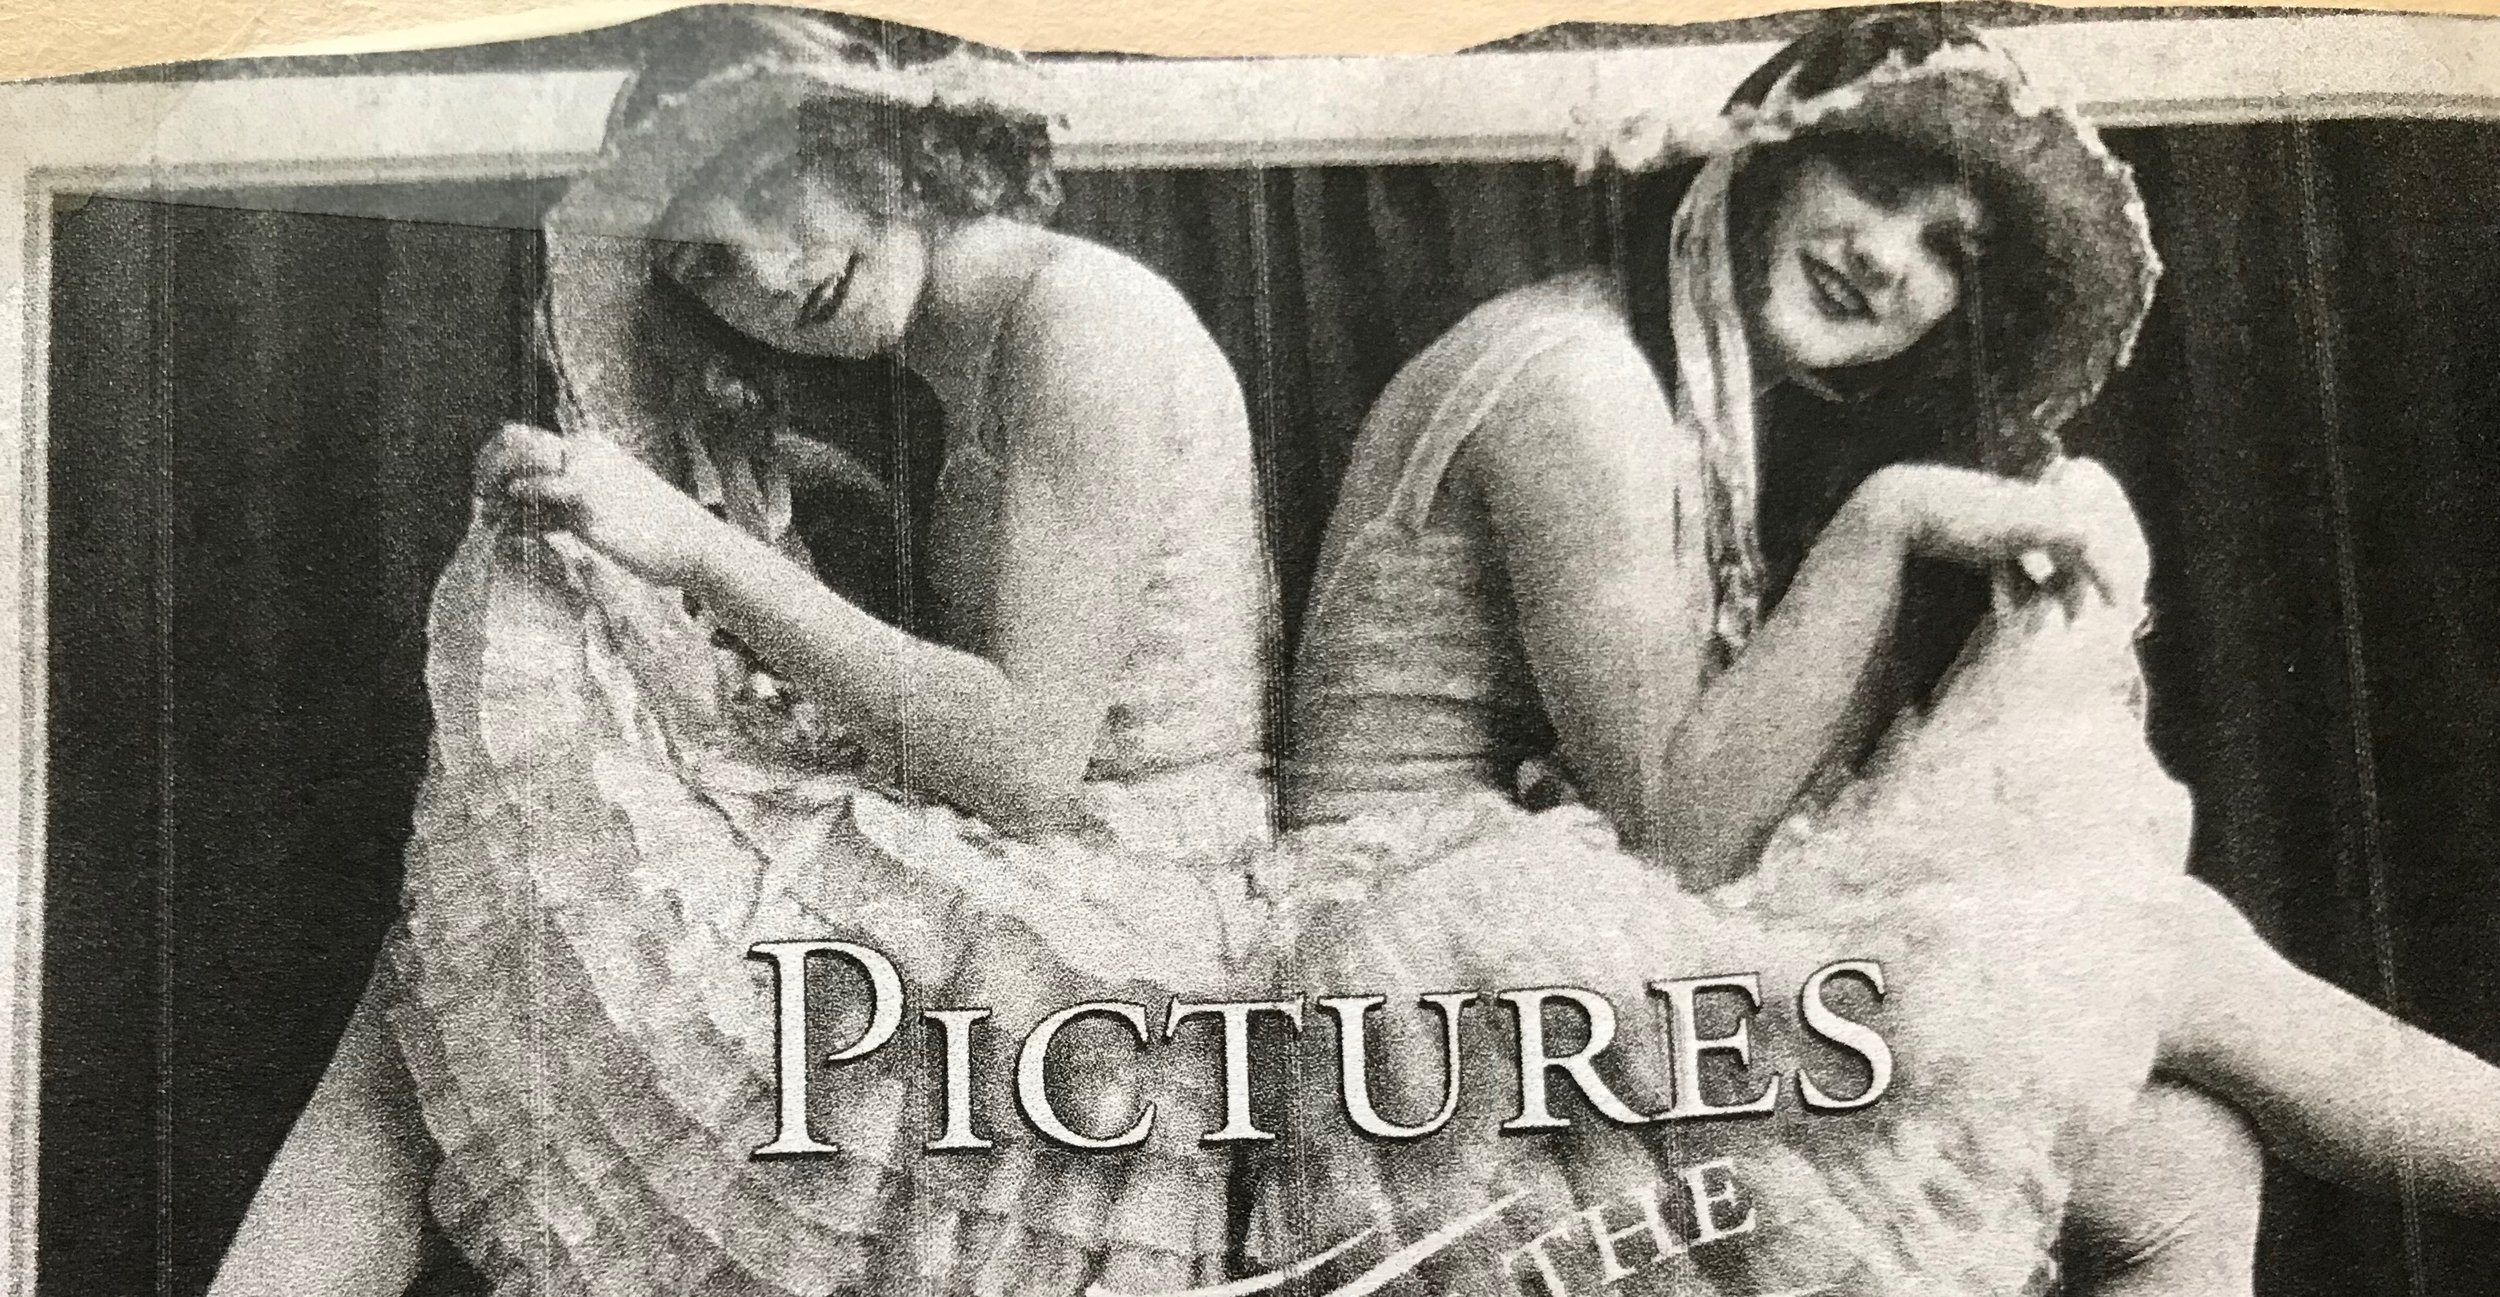 """Caption: """"My grandma Lillian Livesay (left) and her sister, Dorthy Hunter, were vaudeville dancers and actresses when their father, James Day, was an electrician working on the Panama Canal,"""" writes Sandra Packham, Monroe, Washington. """"In the mid-'20s the sisters moved to Long Beach, California for health reasons, leaving their father behind."""" - REMINISCE MAGAZINE"""